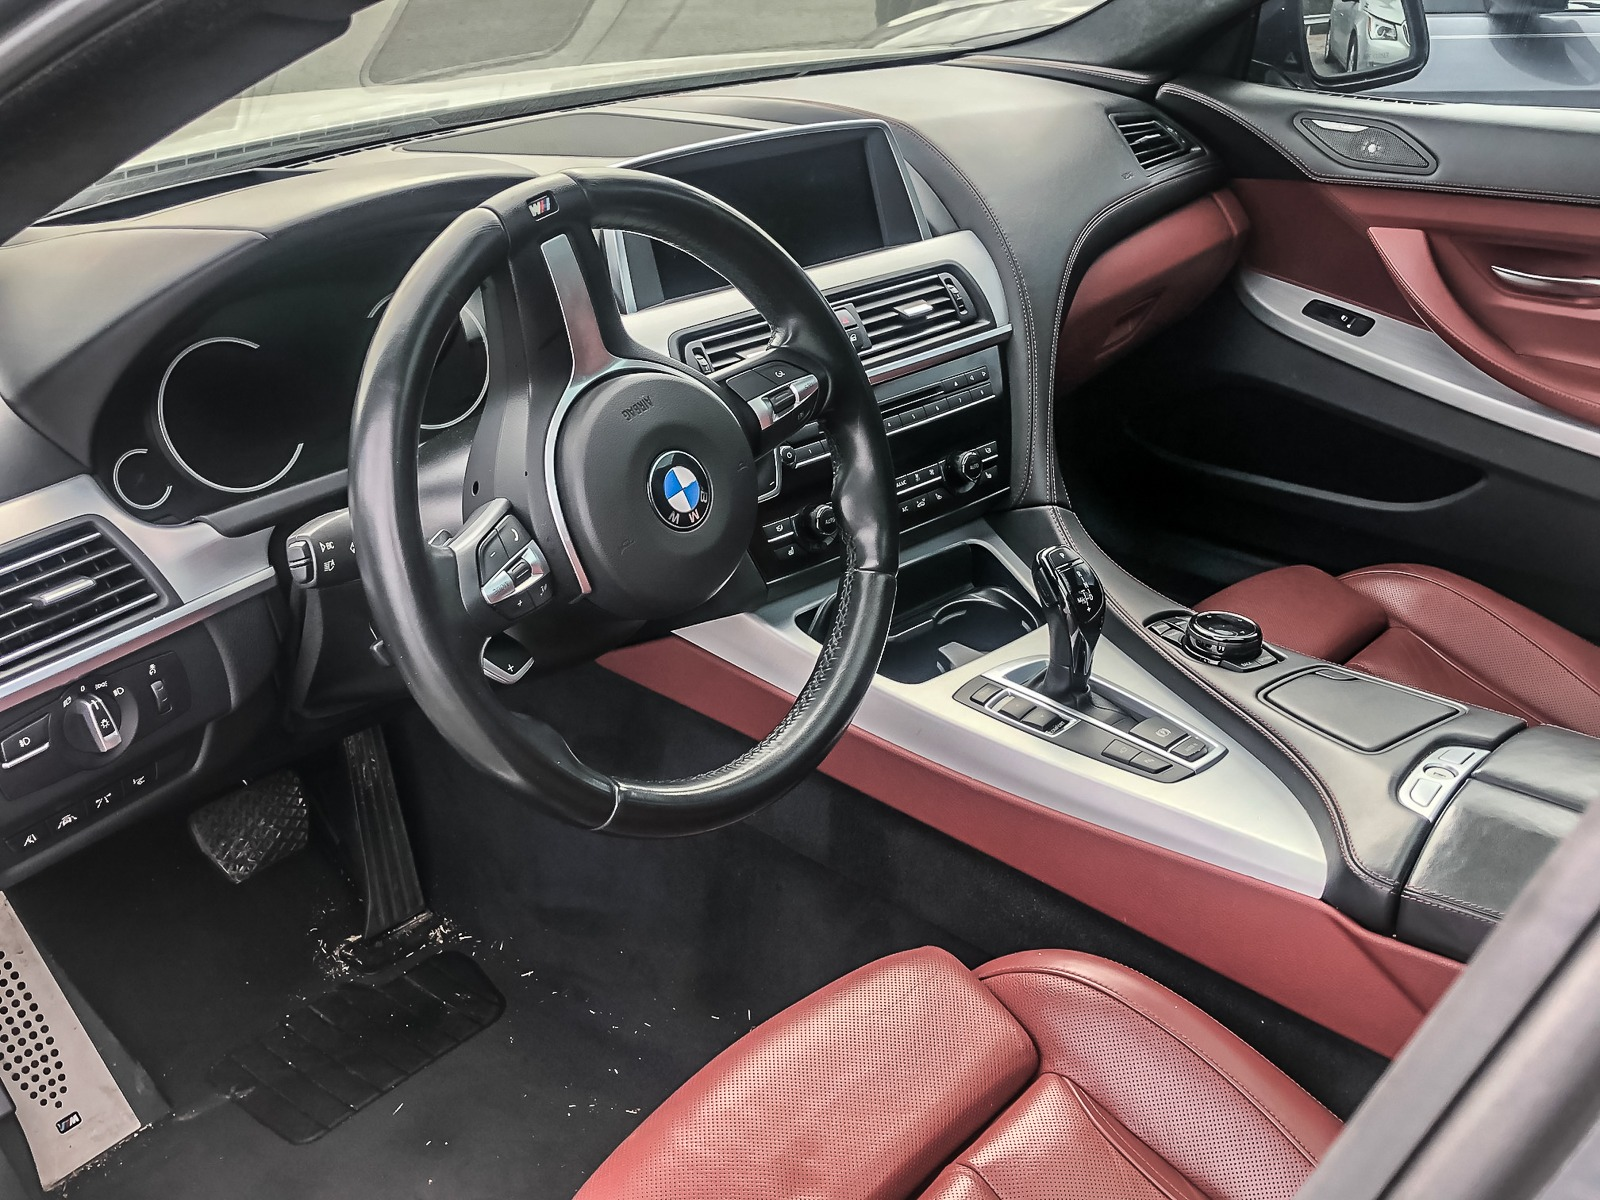 Used 2015 Bmw 6 Series 650i Gran Coupe For Sale 28 990 Inetwork Auto Group Stock P130004